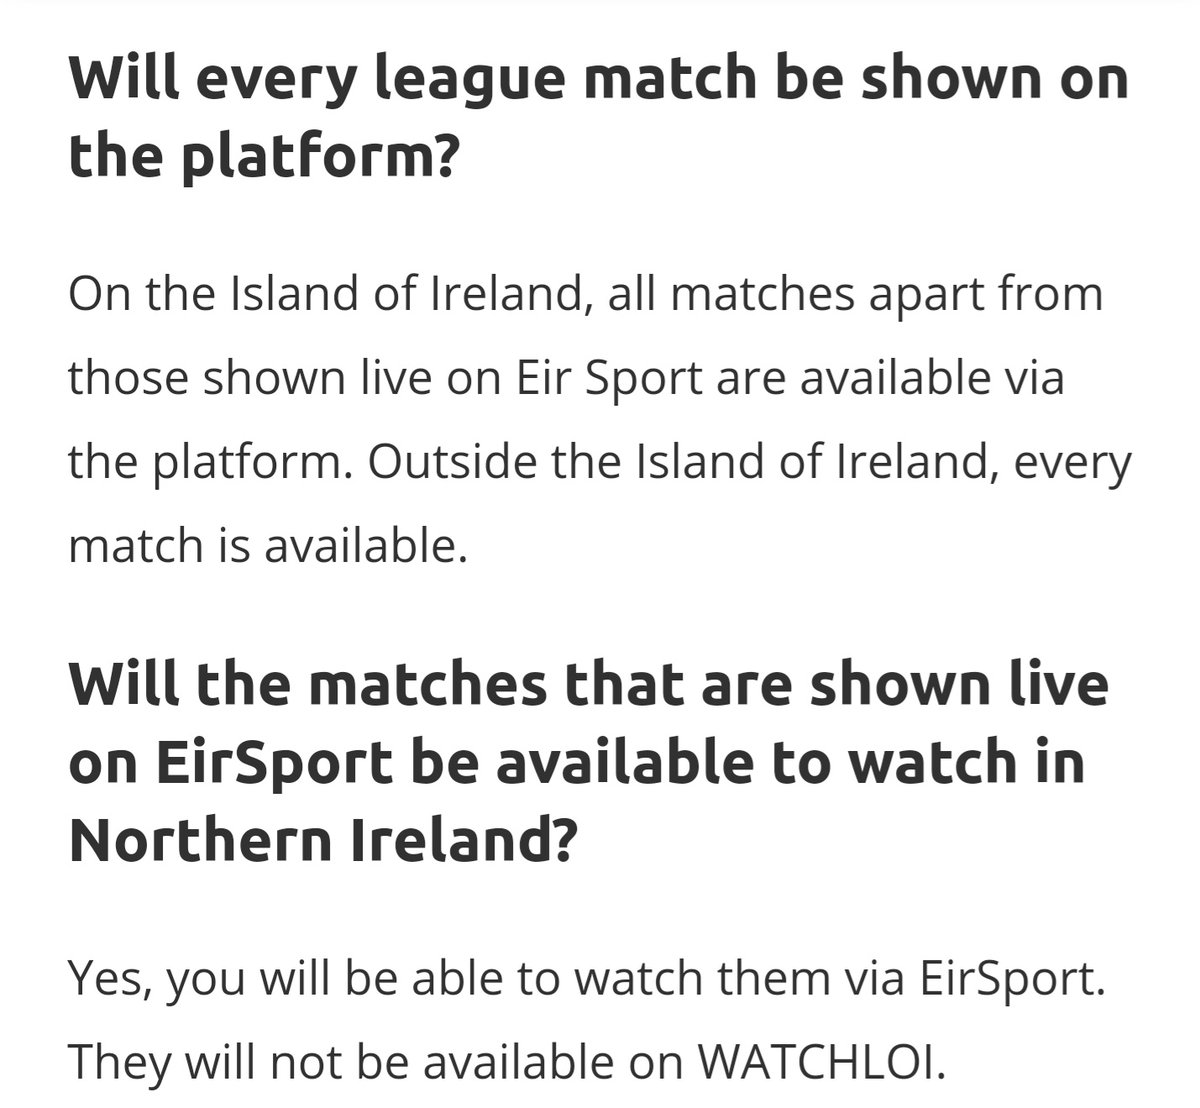 @Macal16 @mark_cafferkey @chriswade74 I understand your frustration but unfortunately its not a situation we control. Games selected for broadcast by eir Sport arent included in the WATCHLOI service in the island of Ireland. This is why the WATCHLOI rest of world pass costs more as it includes more games.